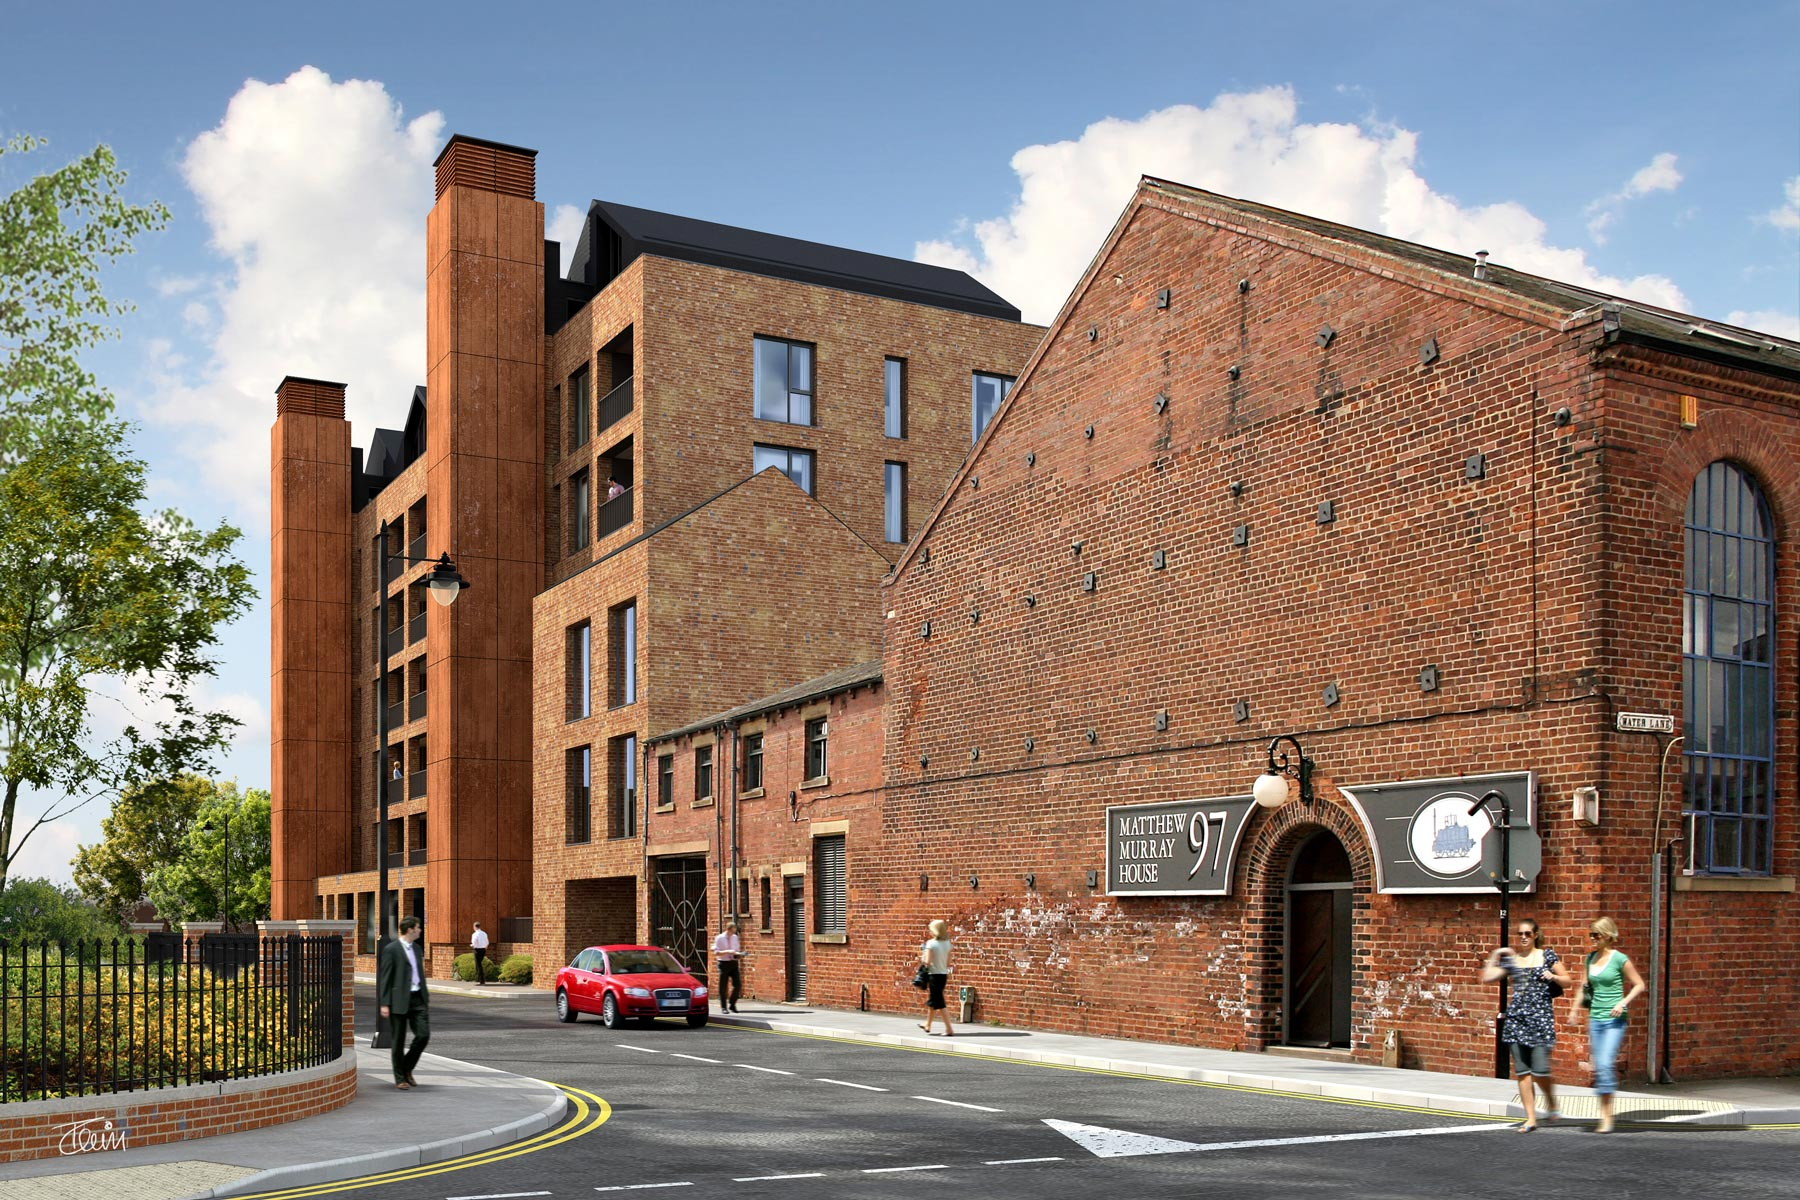 A new red brick building containing 53 apartments and featuring two 'chimneys', designed to hide the building's lift shafts and ventilation.